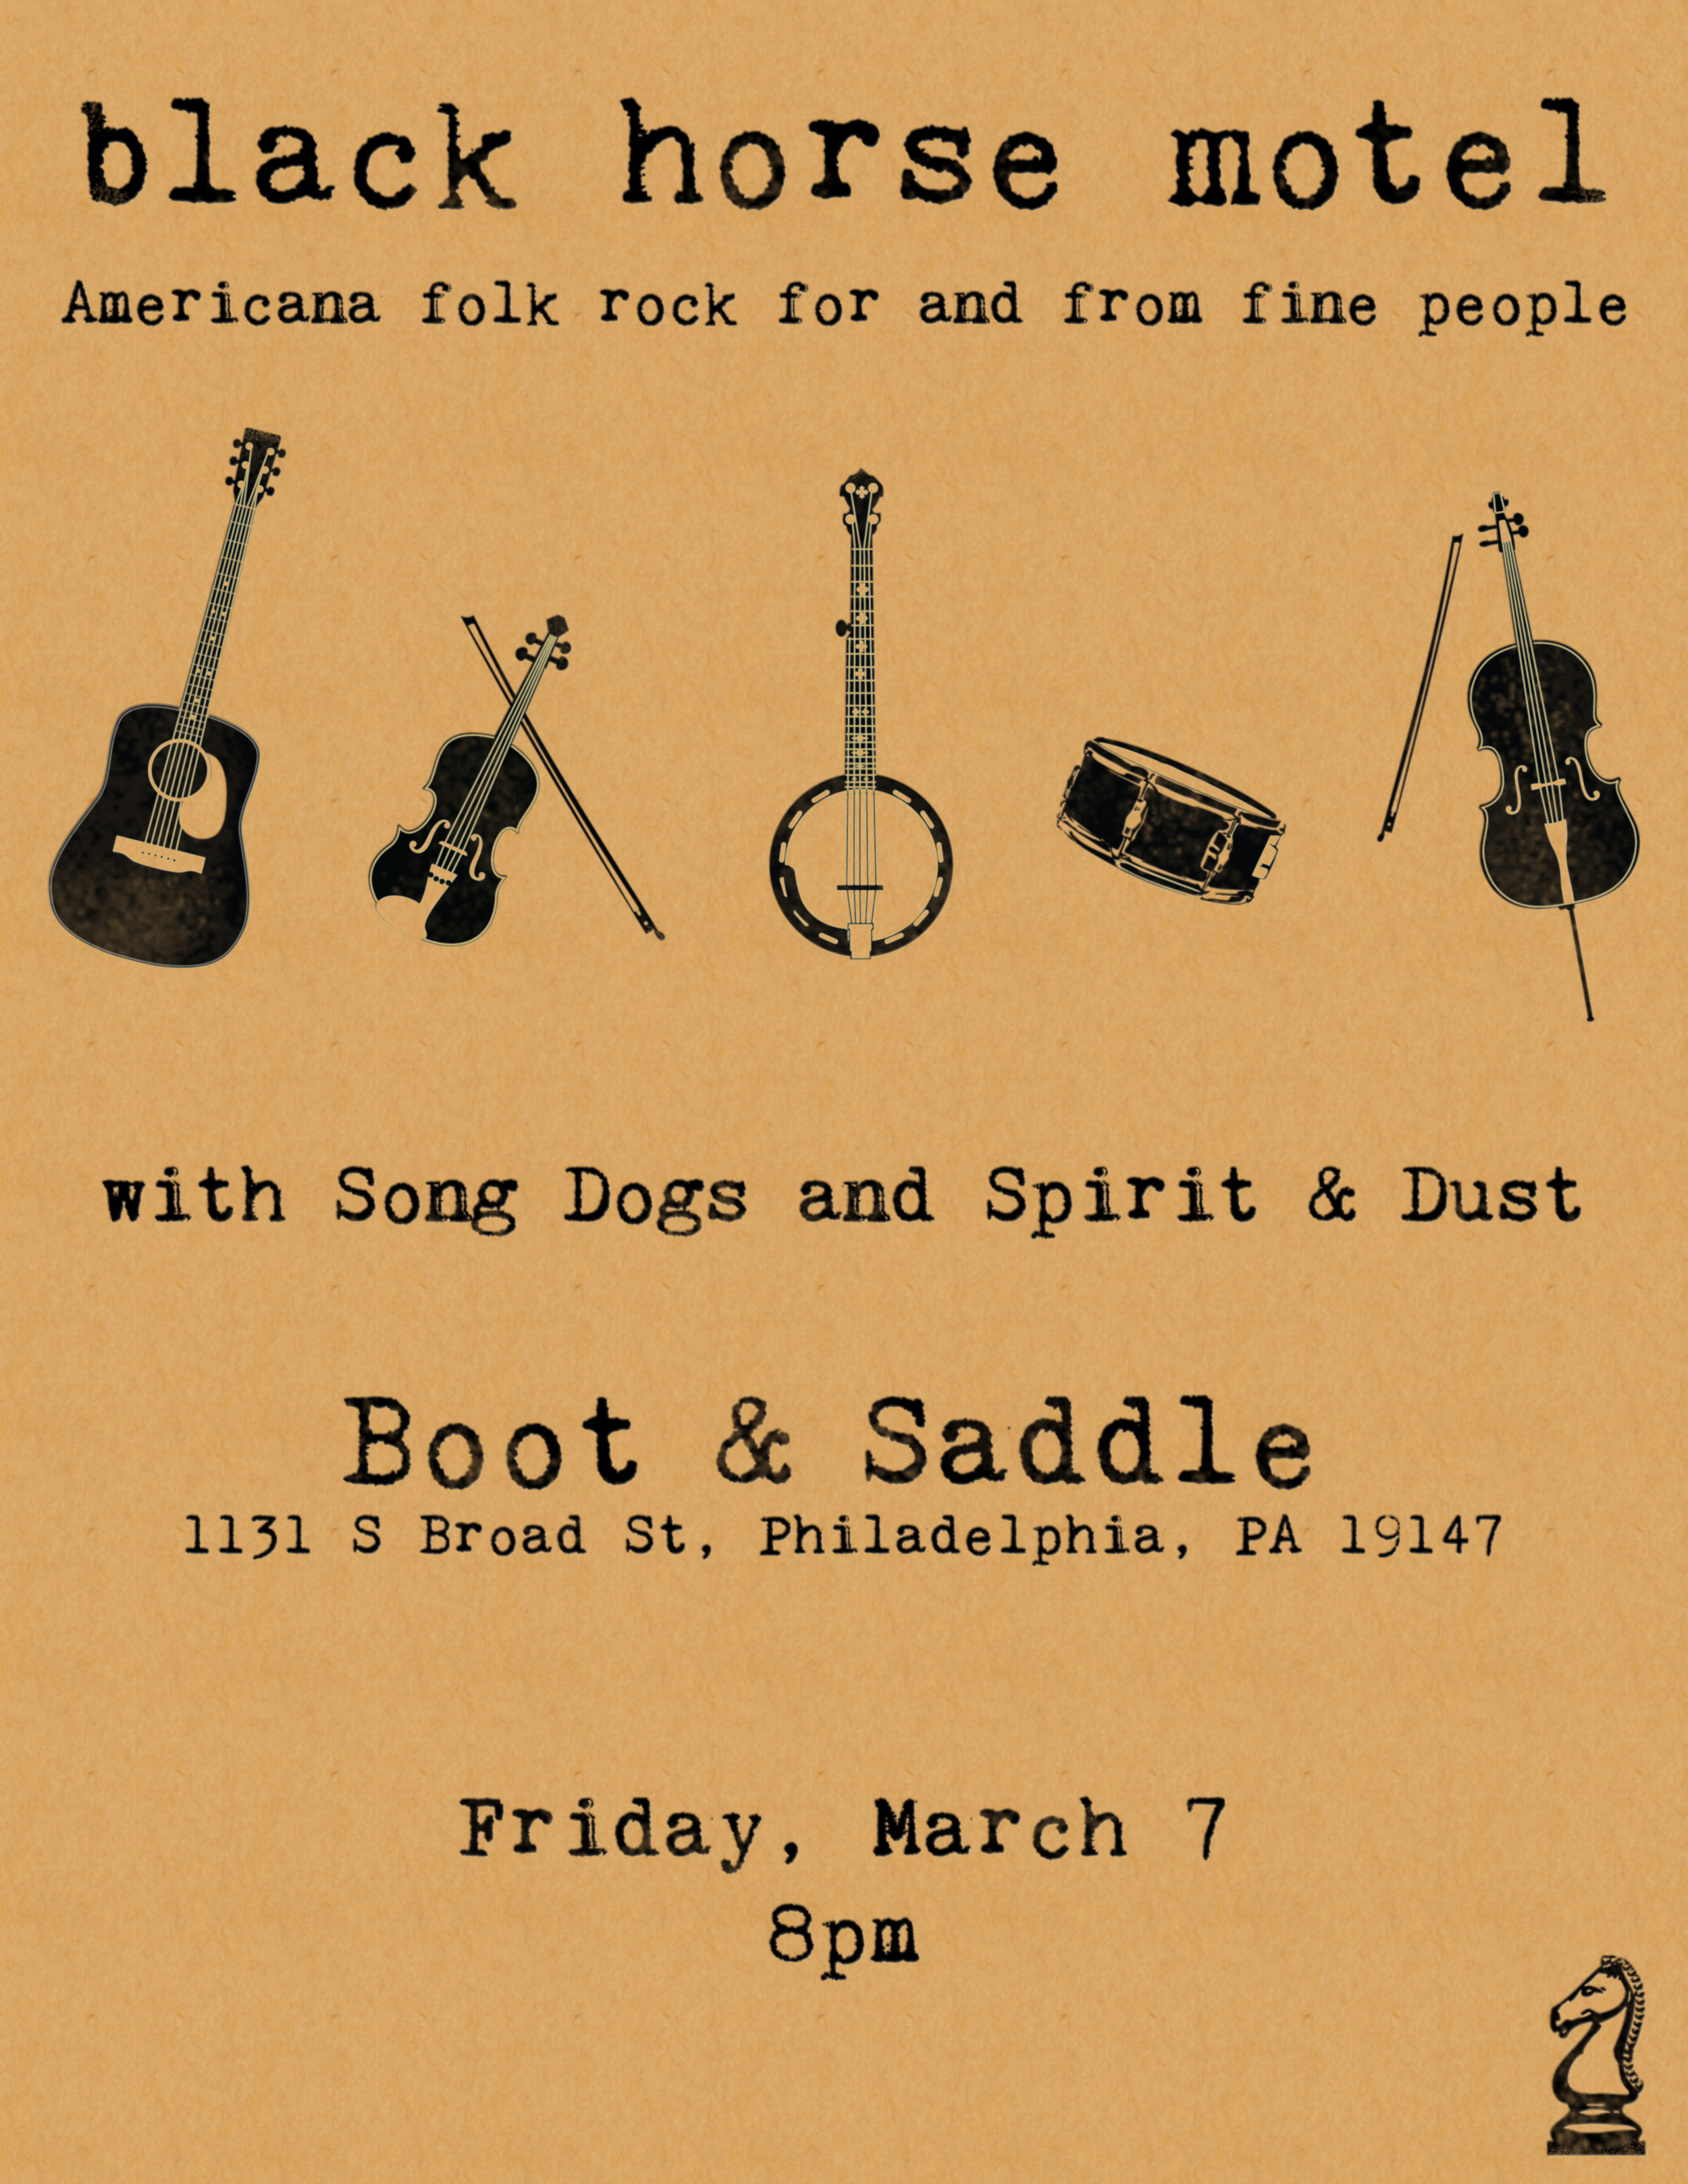 March 7 Boot & Saddle